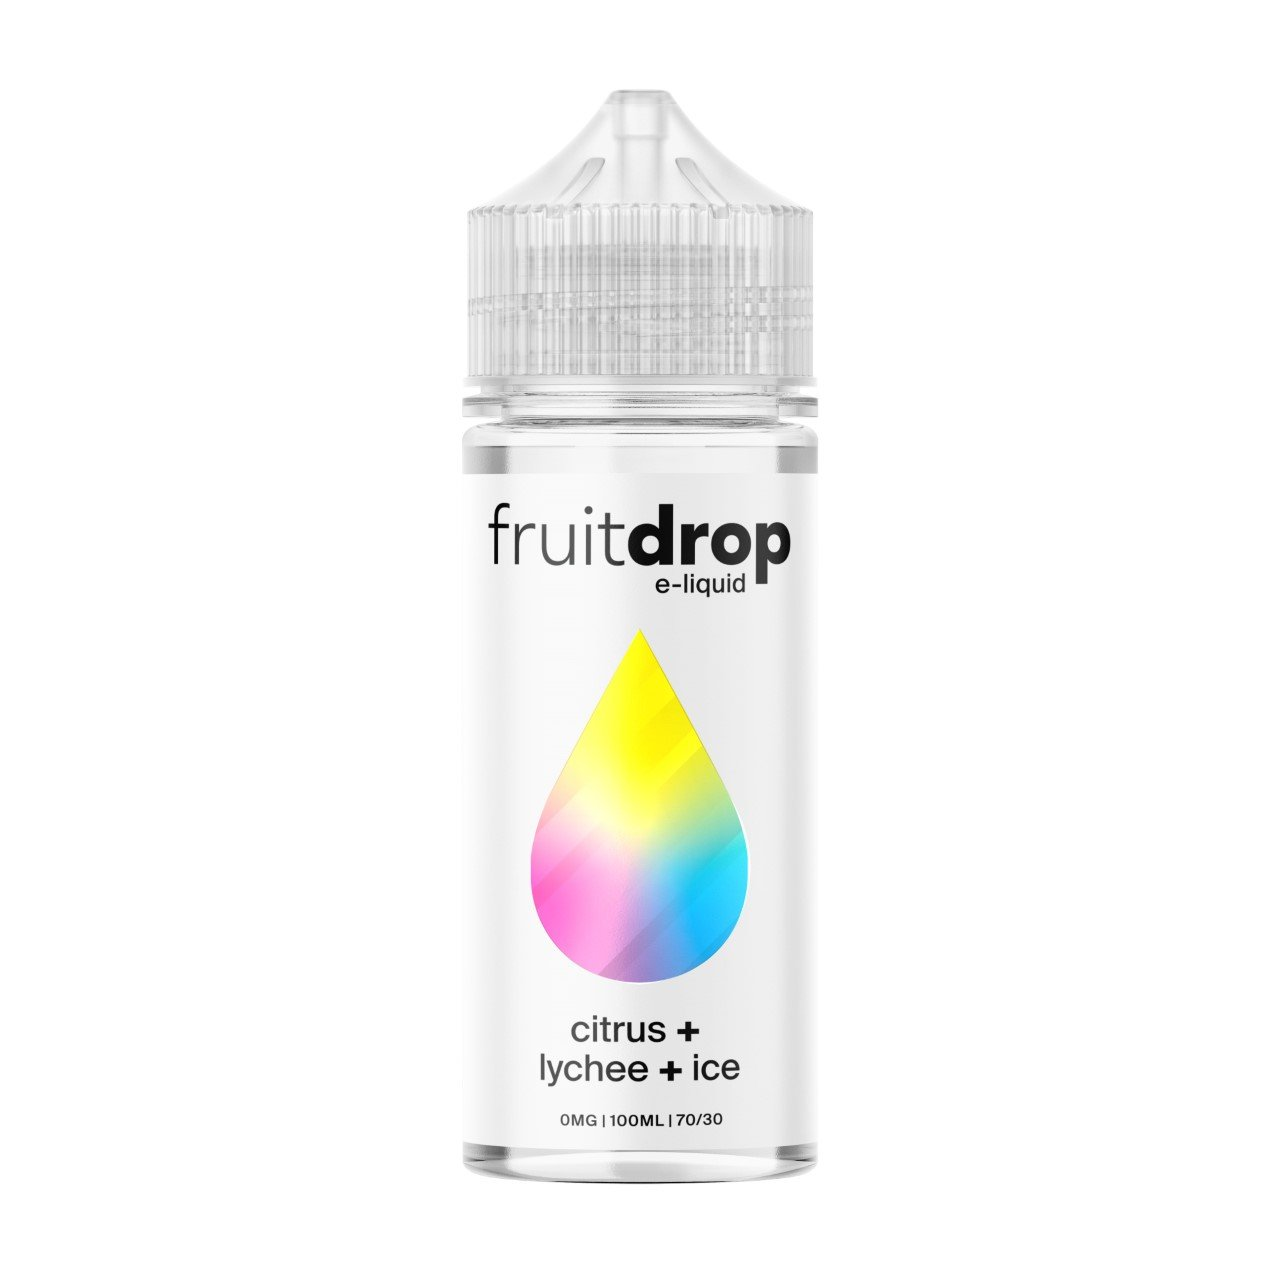 Fruit_Drop_100ml_Bottle_Mockup_Citrus_Lychee_Ice